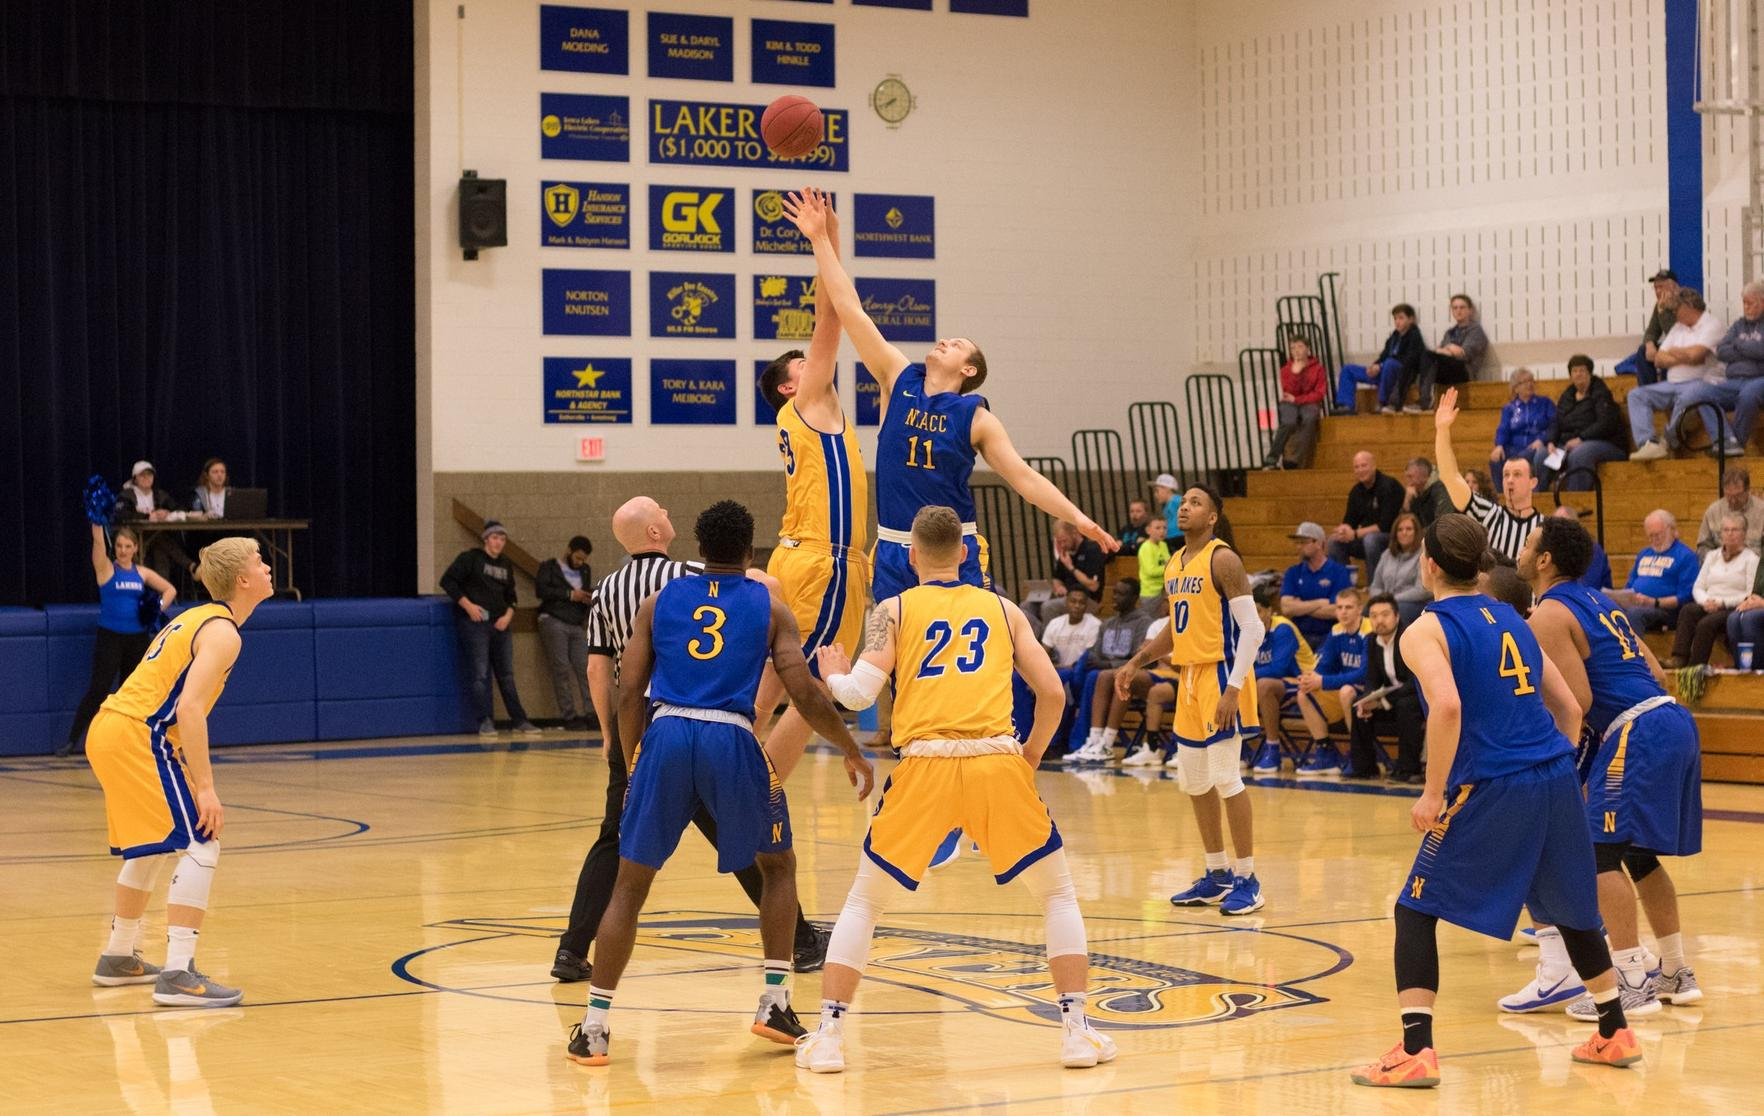 Iowa Lakes Basketball Home Opener